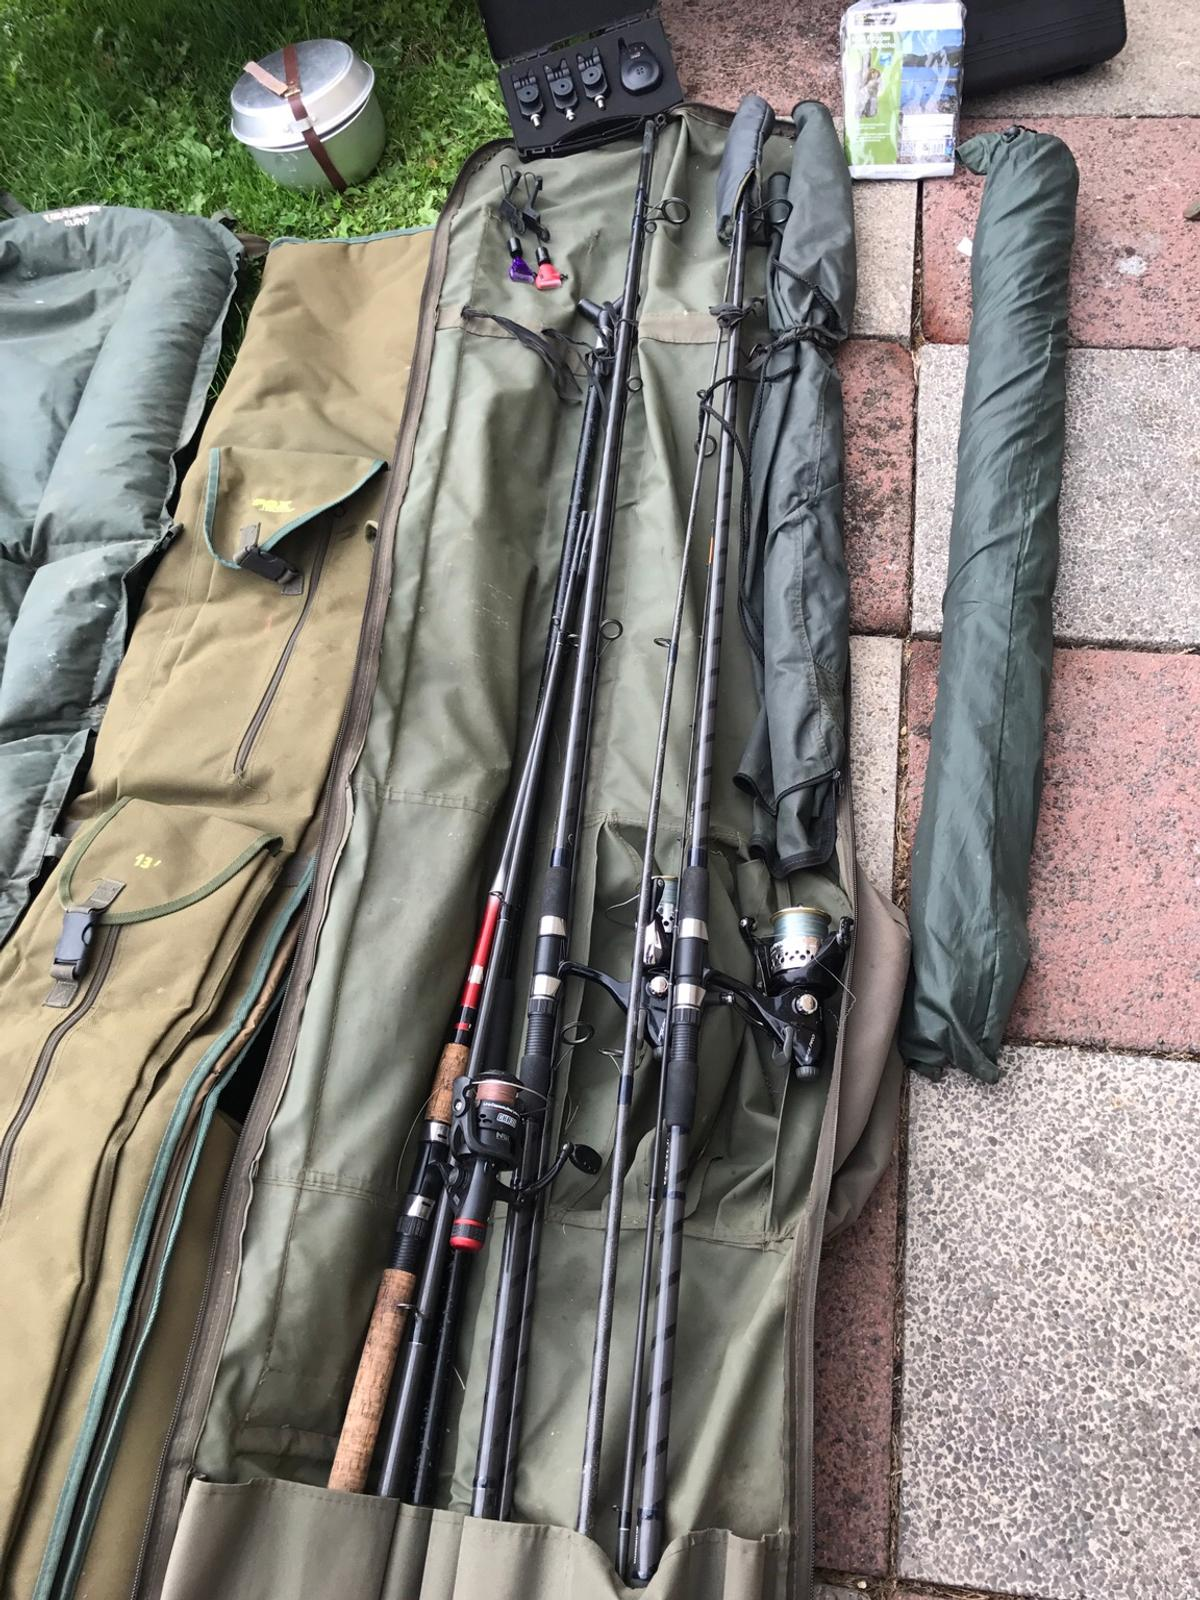 Full Carp Fishing Set Up in NP23 Cwm für £ 550,00 zum